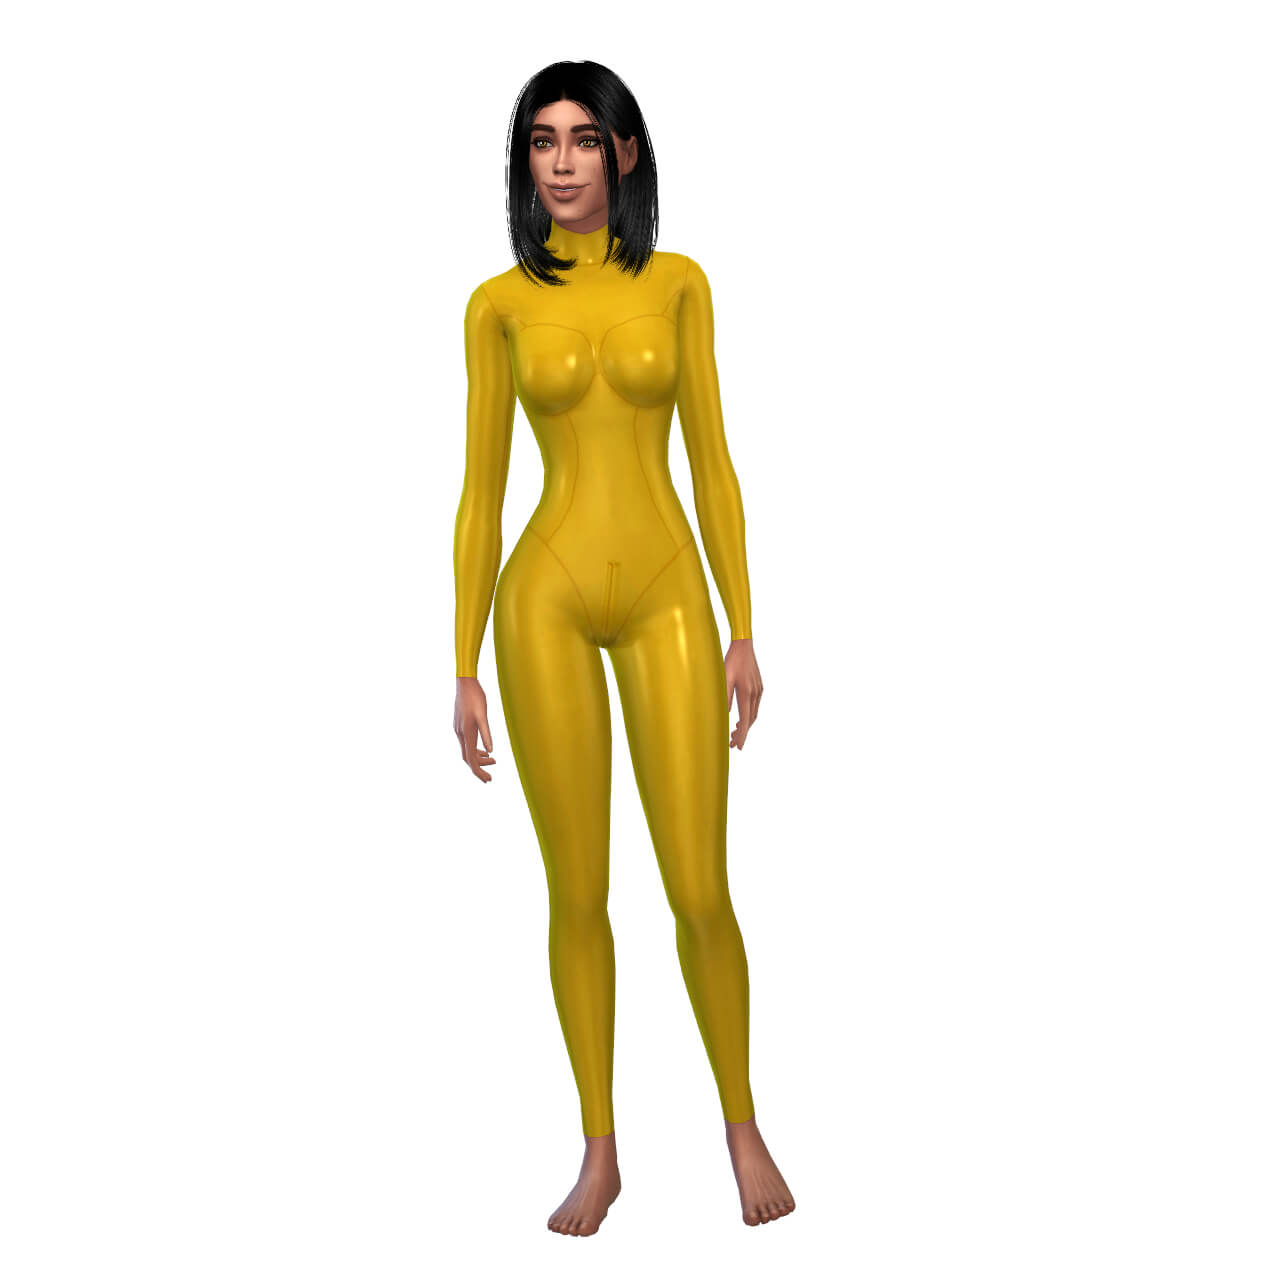 Latex Basic Suit with zipper closed